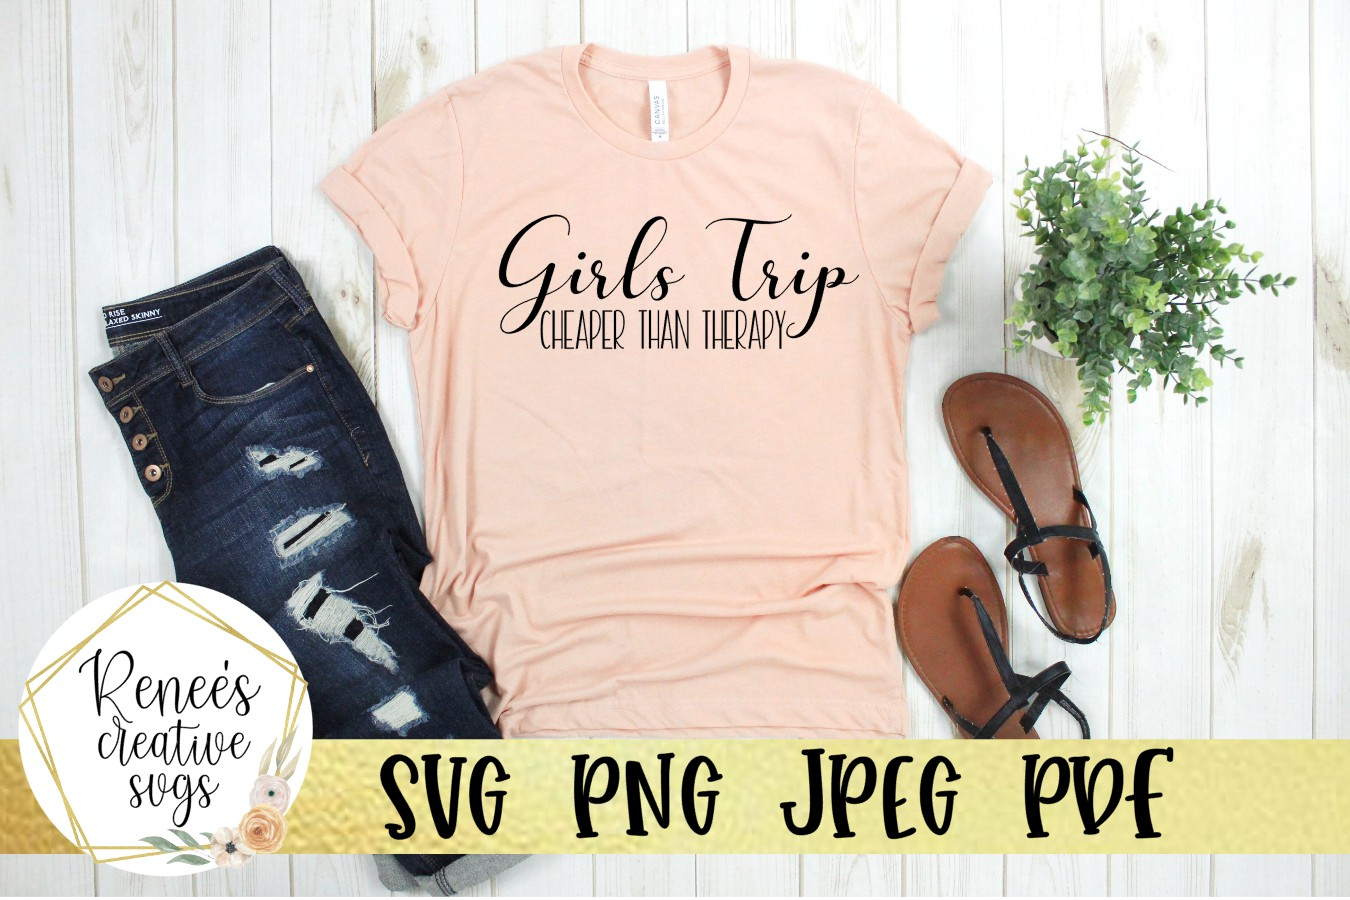 Girls Trip, Cheaper than therapy | Humor | SVG Cutting File example image 2